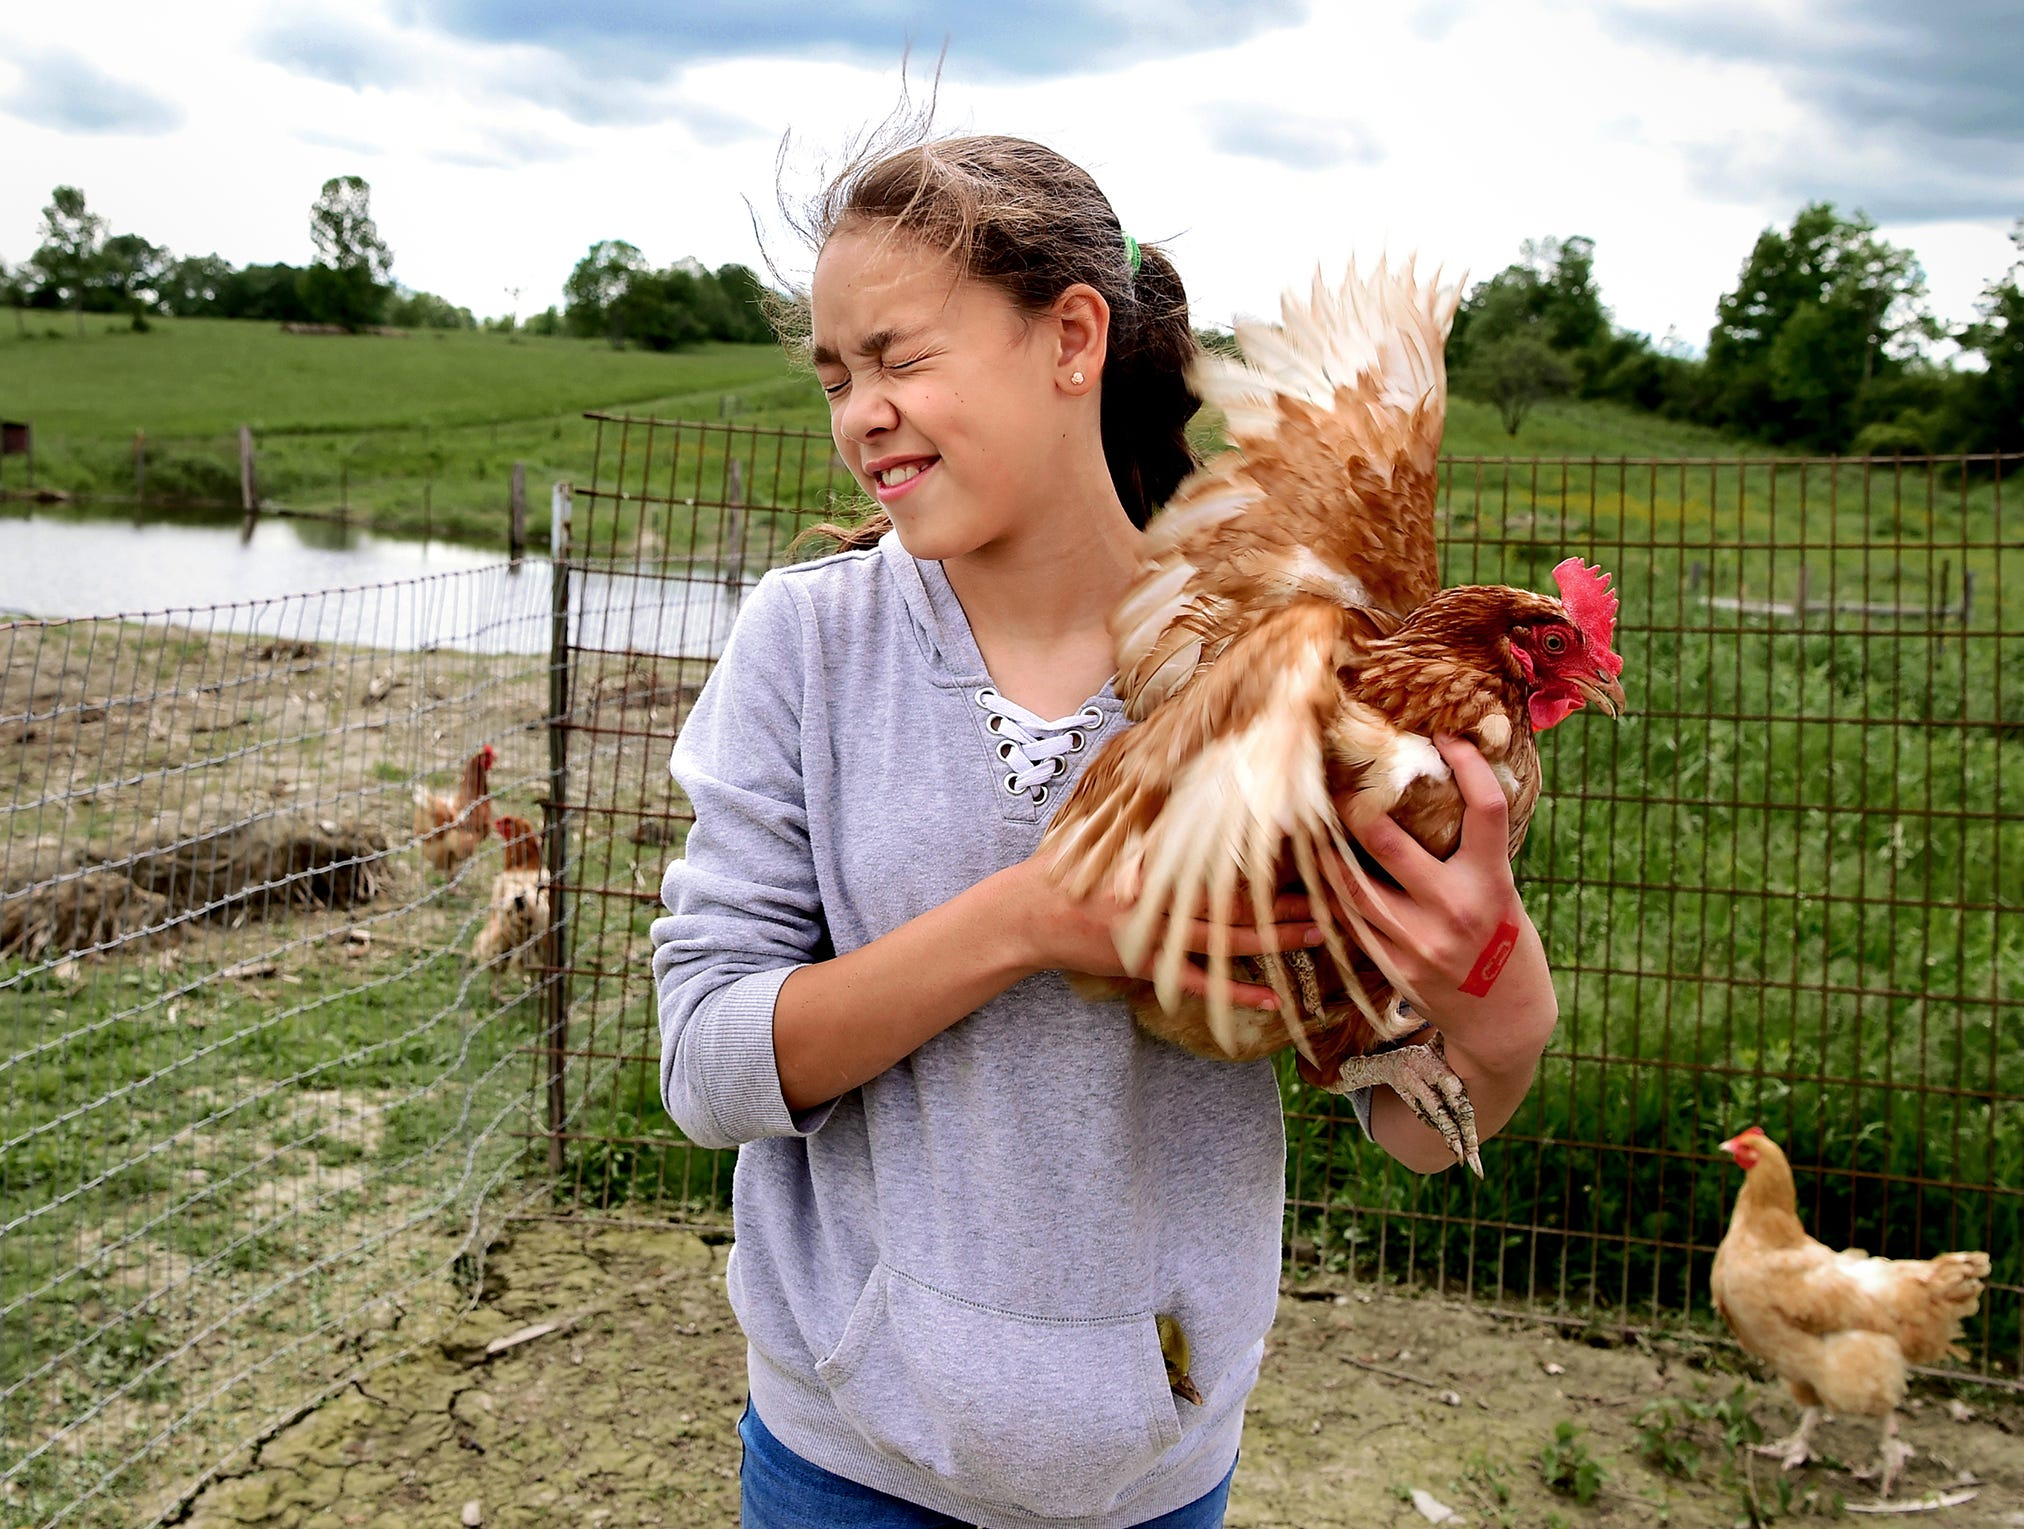 Peyton White hold a chicken on her family's farm in Trumansburg on June 4, 2018. Peyton, age 11, was afraid of the chickens when she first went to live with her grandparents but now cares for the chickens and many other farm animals. Peyton says she wants to be a veterinarian when she grows up.